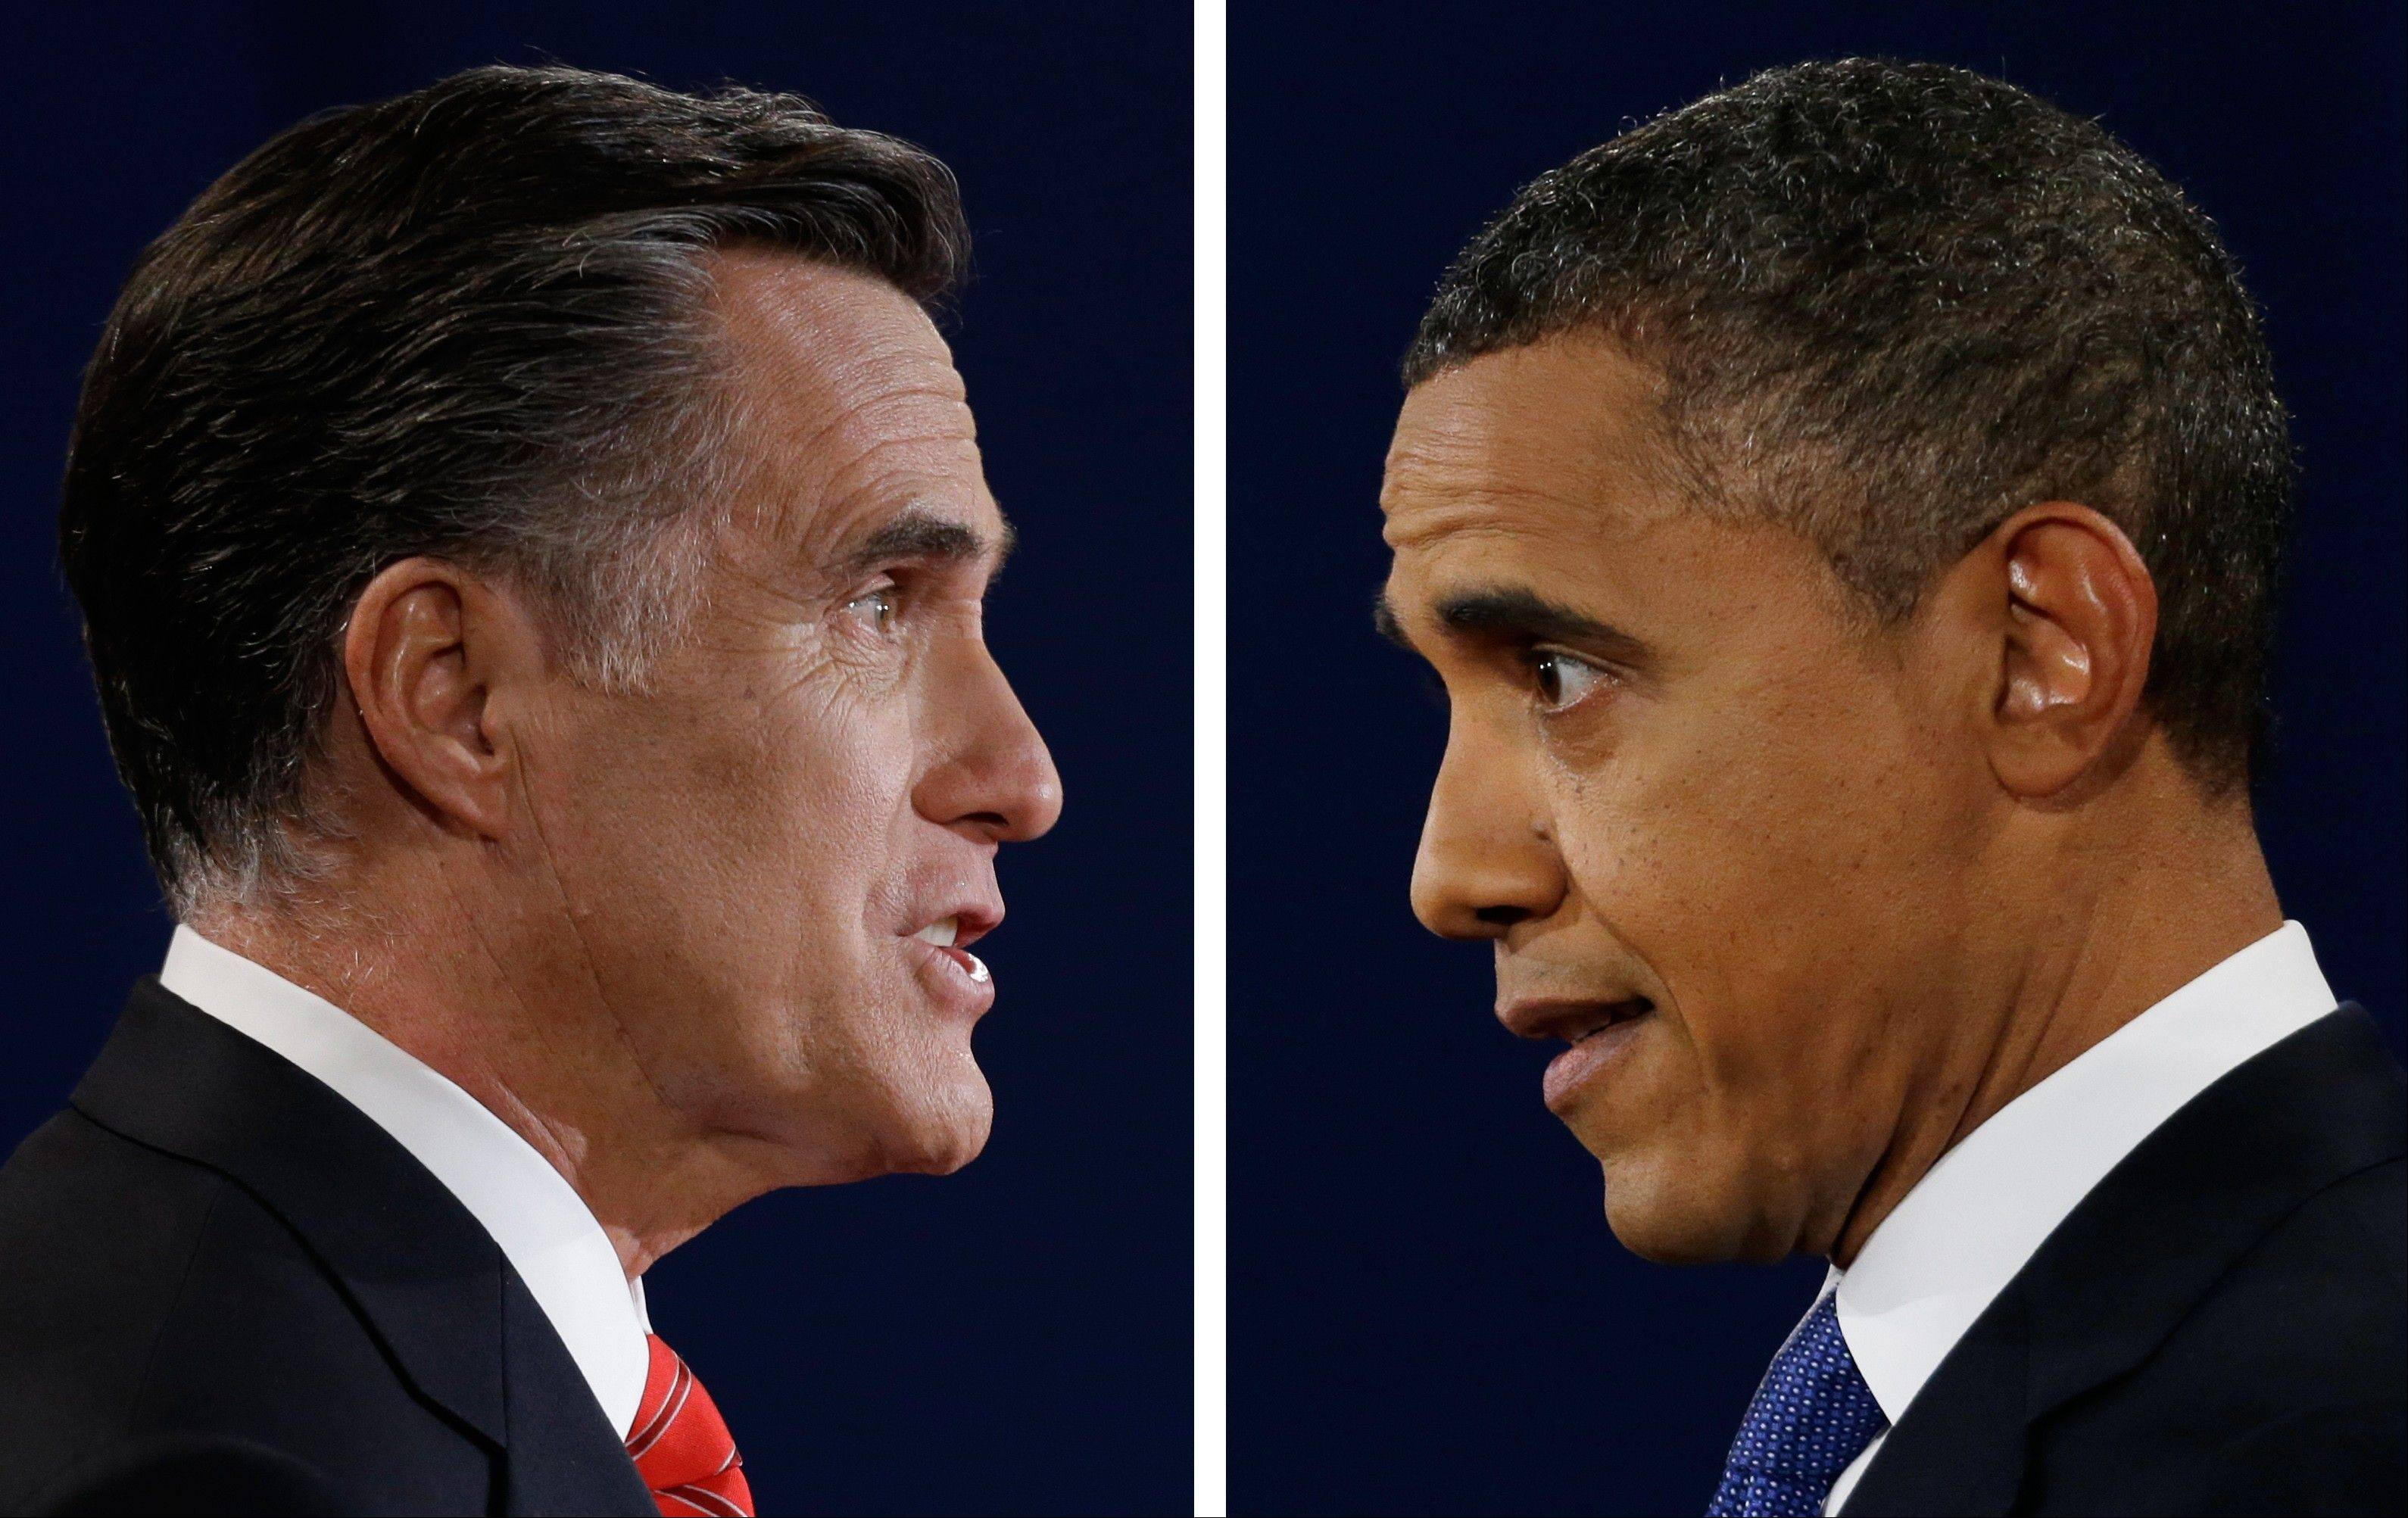 Republican presidential nominee Mitt Romney and President Barack Obama speak during their first presidential debate at the University of Denver, Colo. In a September Pew Research Center poll 48 percent of registered voters said Obama was more �honest and truthful,� to 34 percent who felt Romney was. And a CBS News/New York Times survey earlier in September asked separately whether each candidate was honest and trustworthy: 58 percent of likely voters described Obama that way while 53 percent said that of Romney.